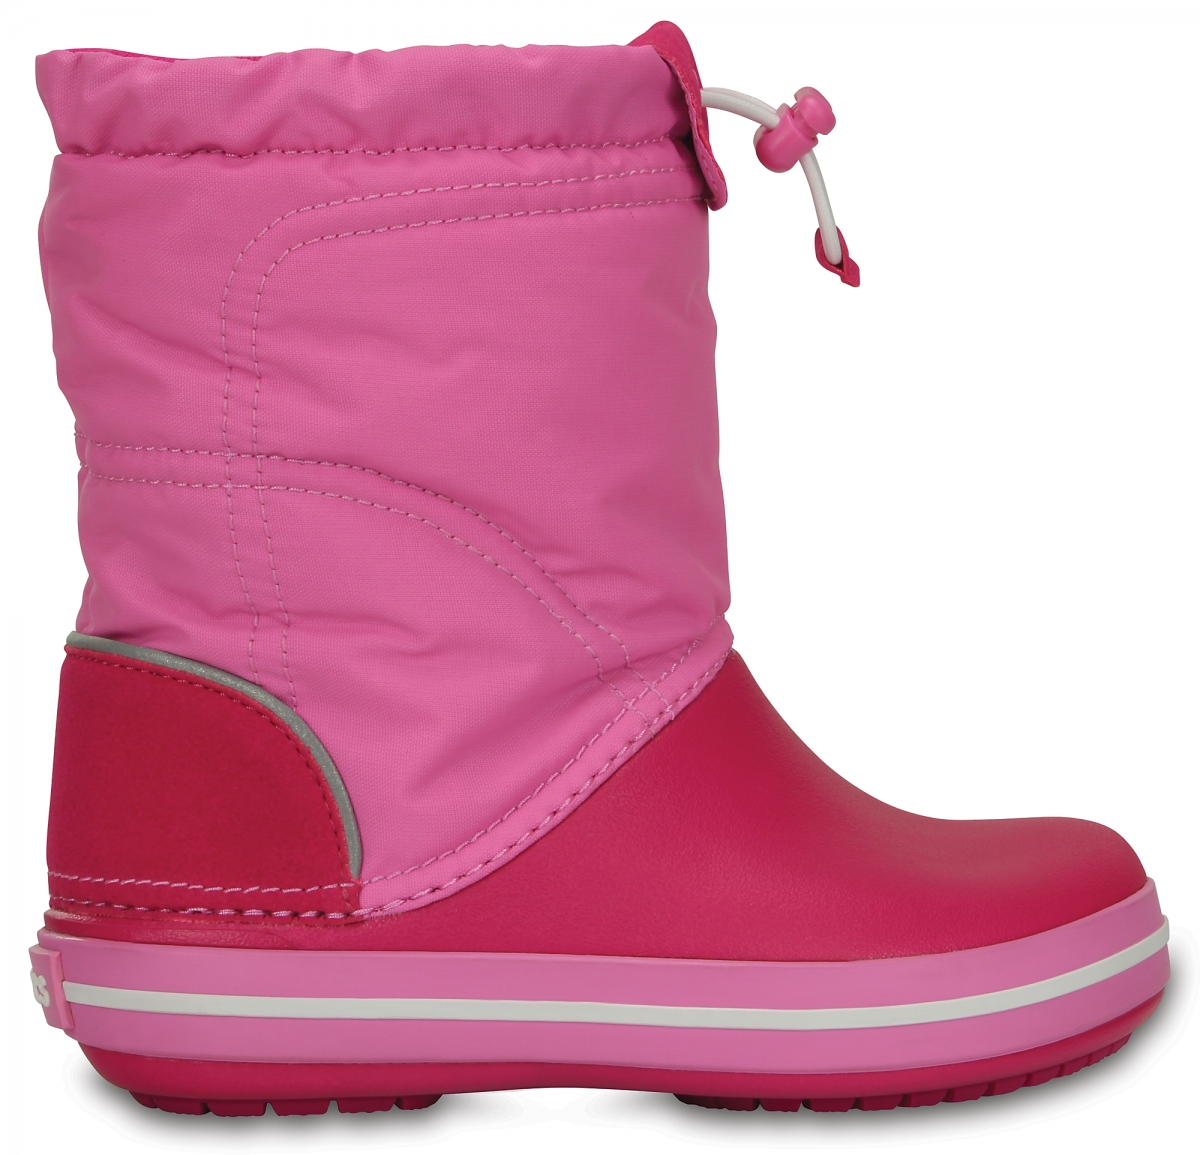 Crocs Crocband LodgePoint Boot Kids - Candy Pink/Party Pink, C10 (27-28)